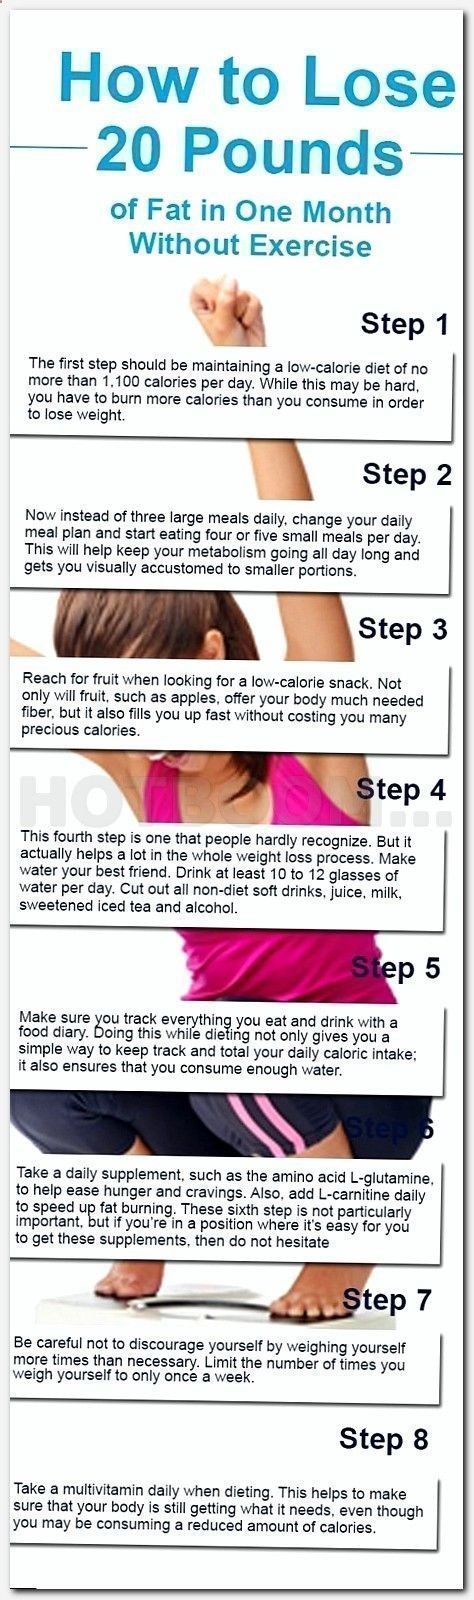 Lose belly fat how long does it take image 2